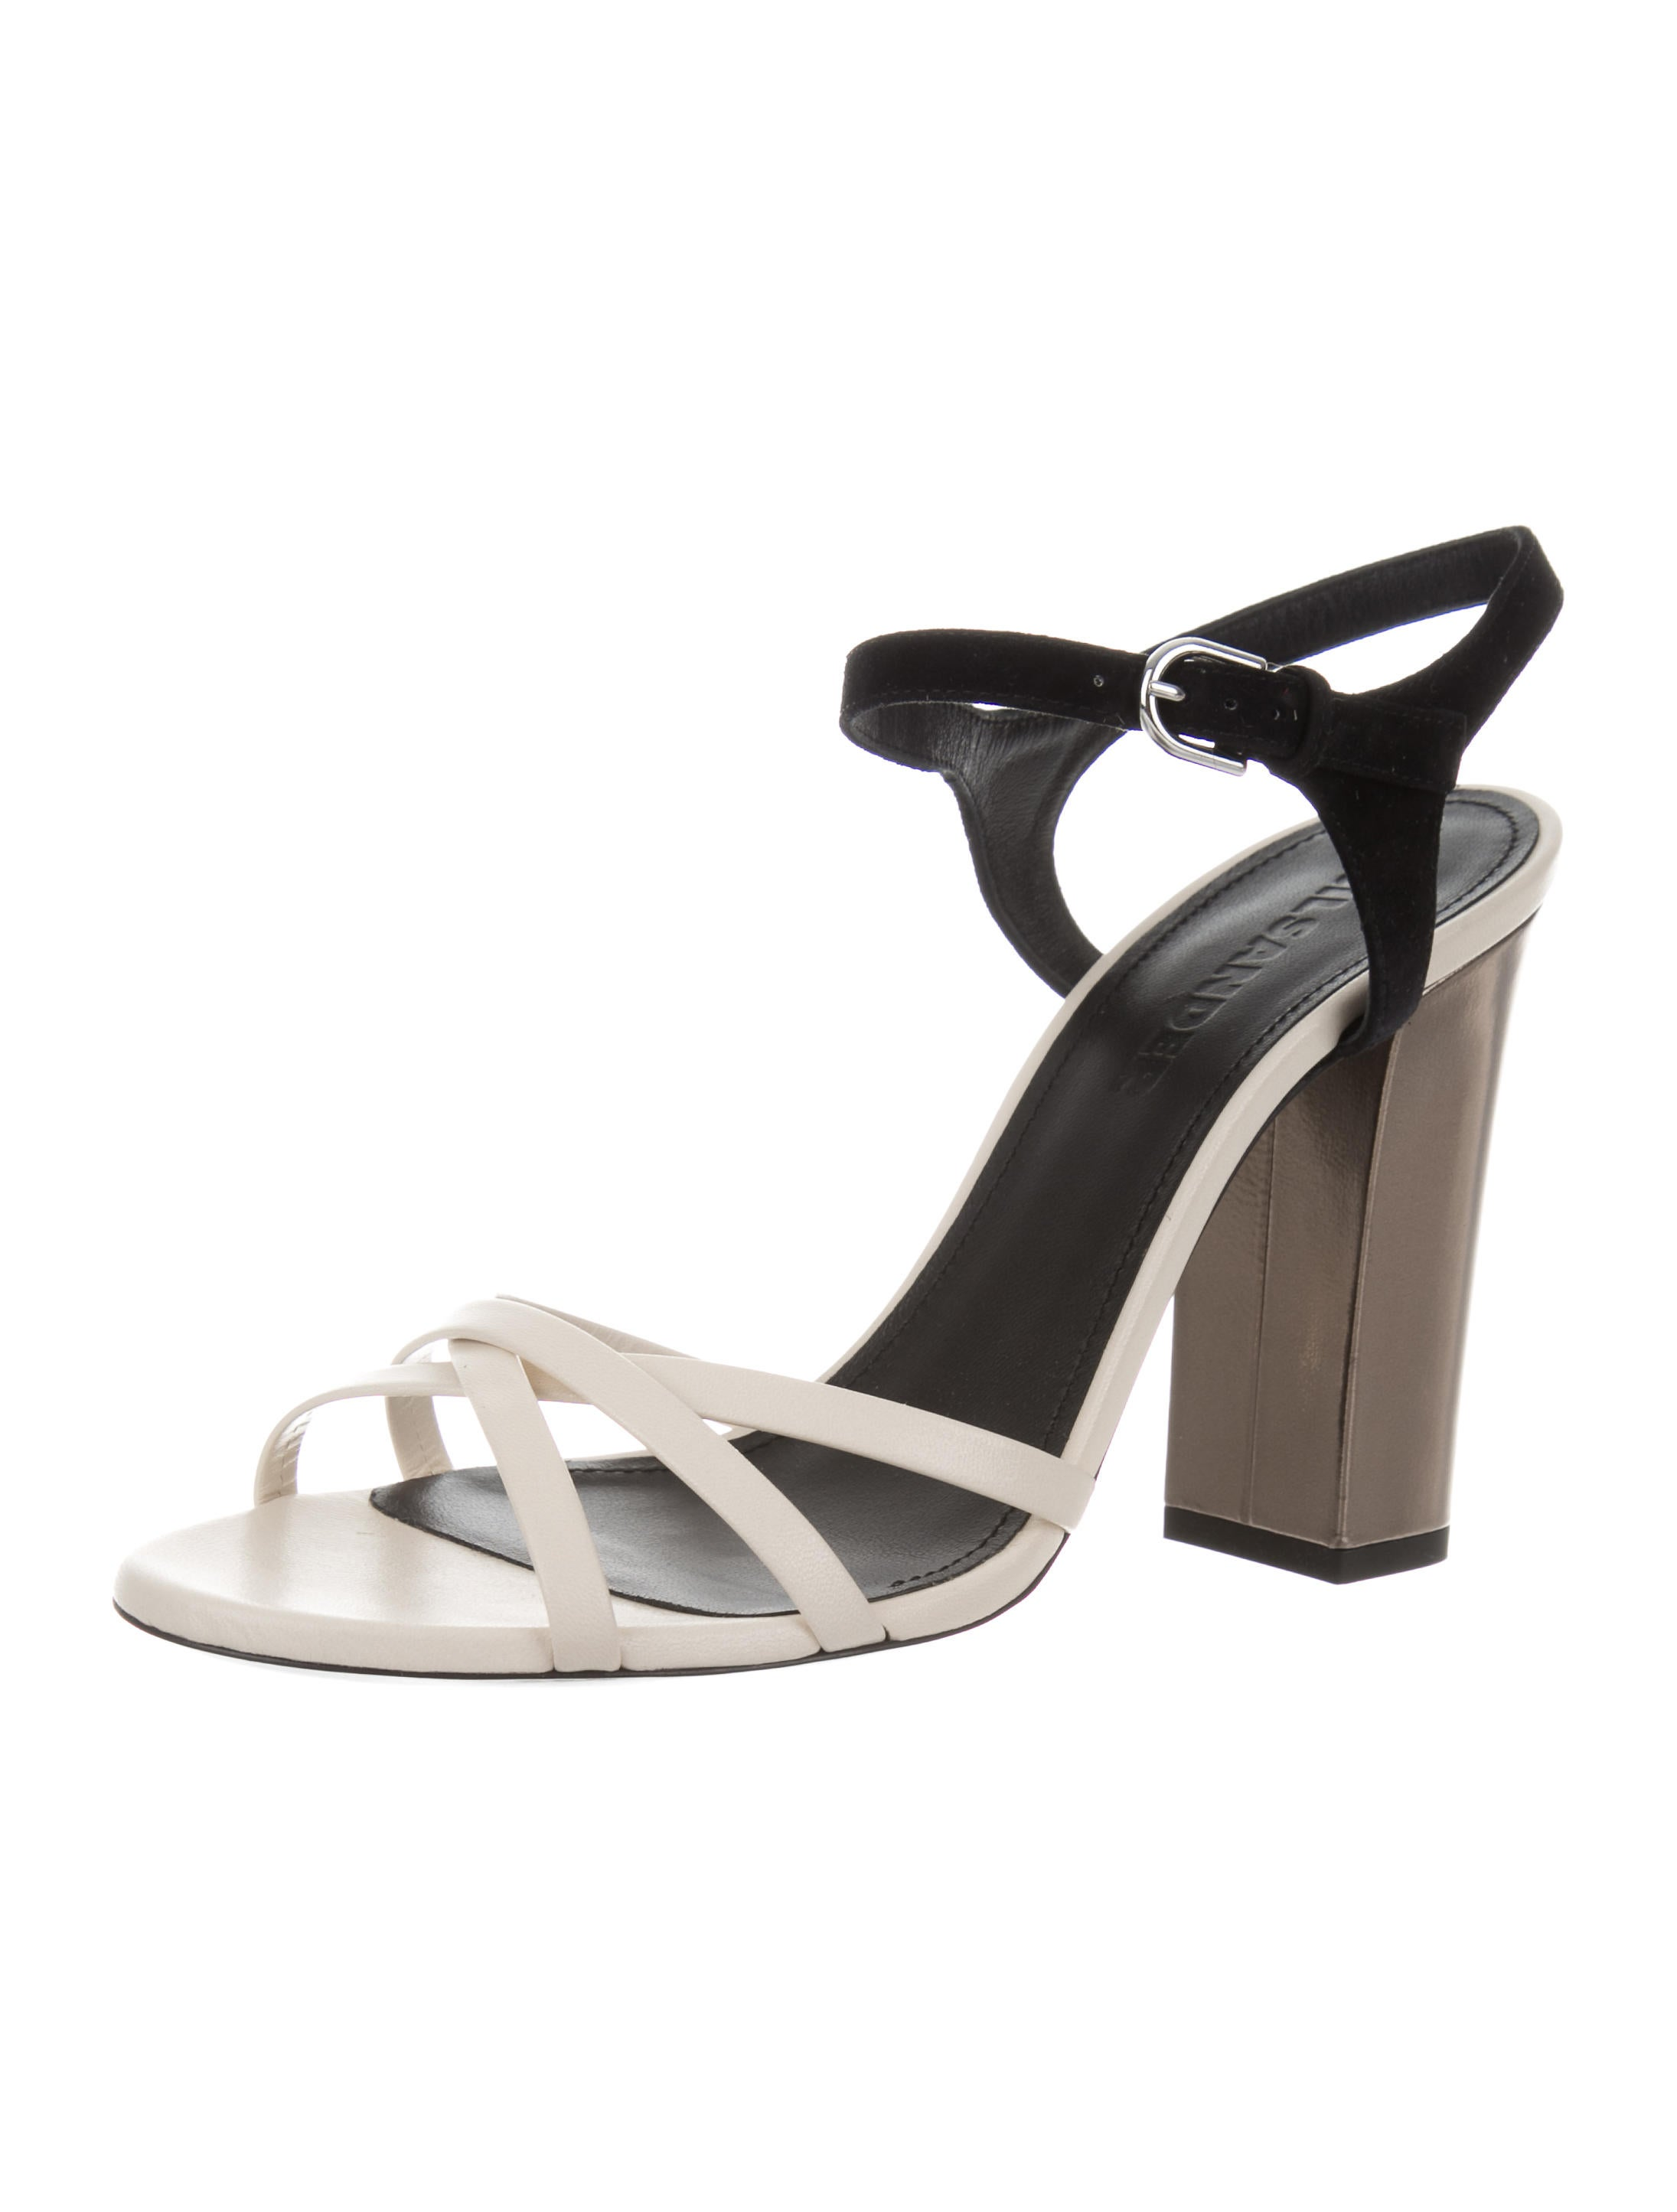 low price official site cheap price Jil Sander Leather Bicolor Sandals w/ Tags discount footlocker pictures GBqVTrg7